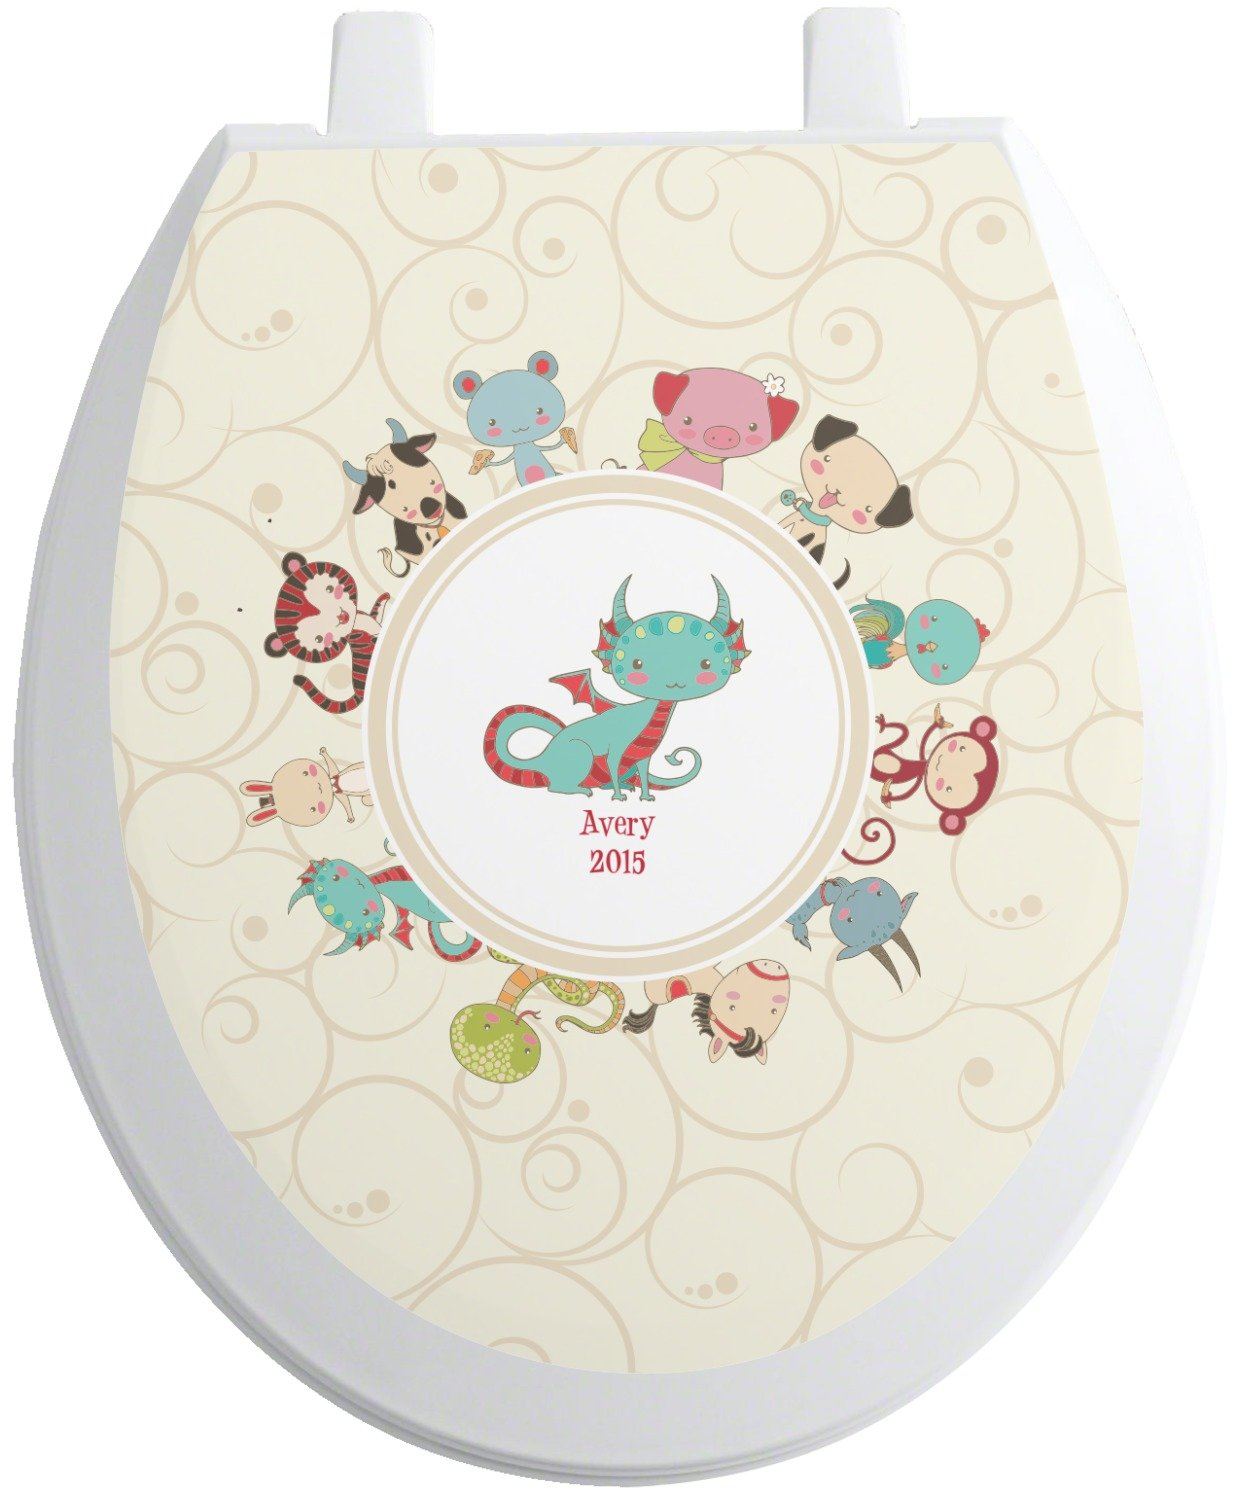 Amazon.com: RNK Shops Chinese Zodiac Toilet Seat Decal - Elongated ...